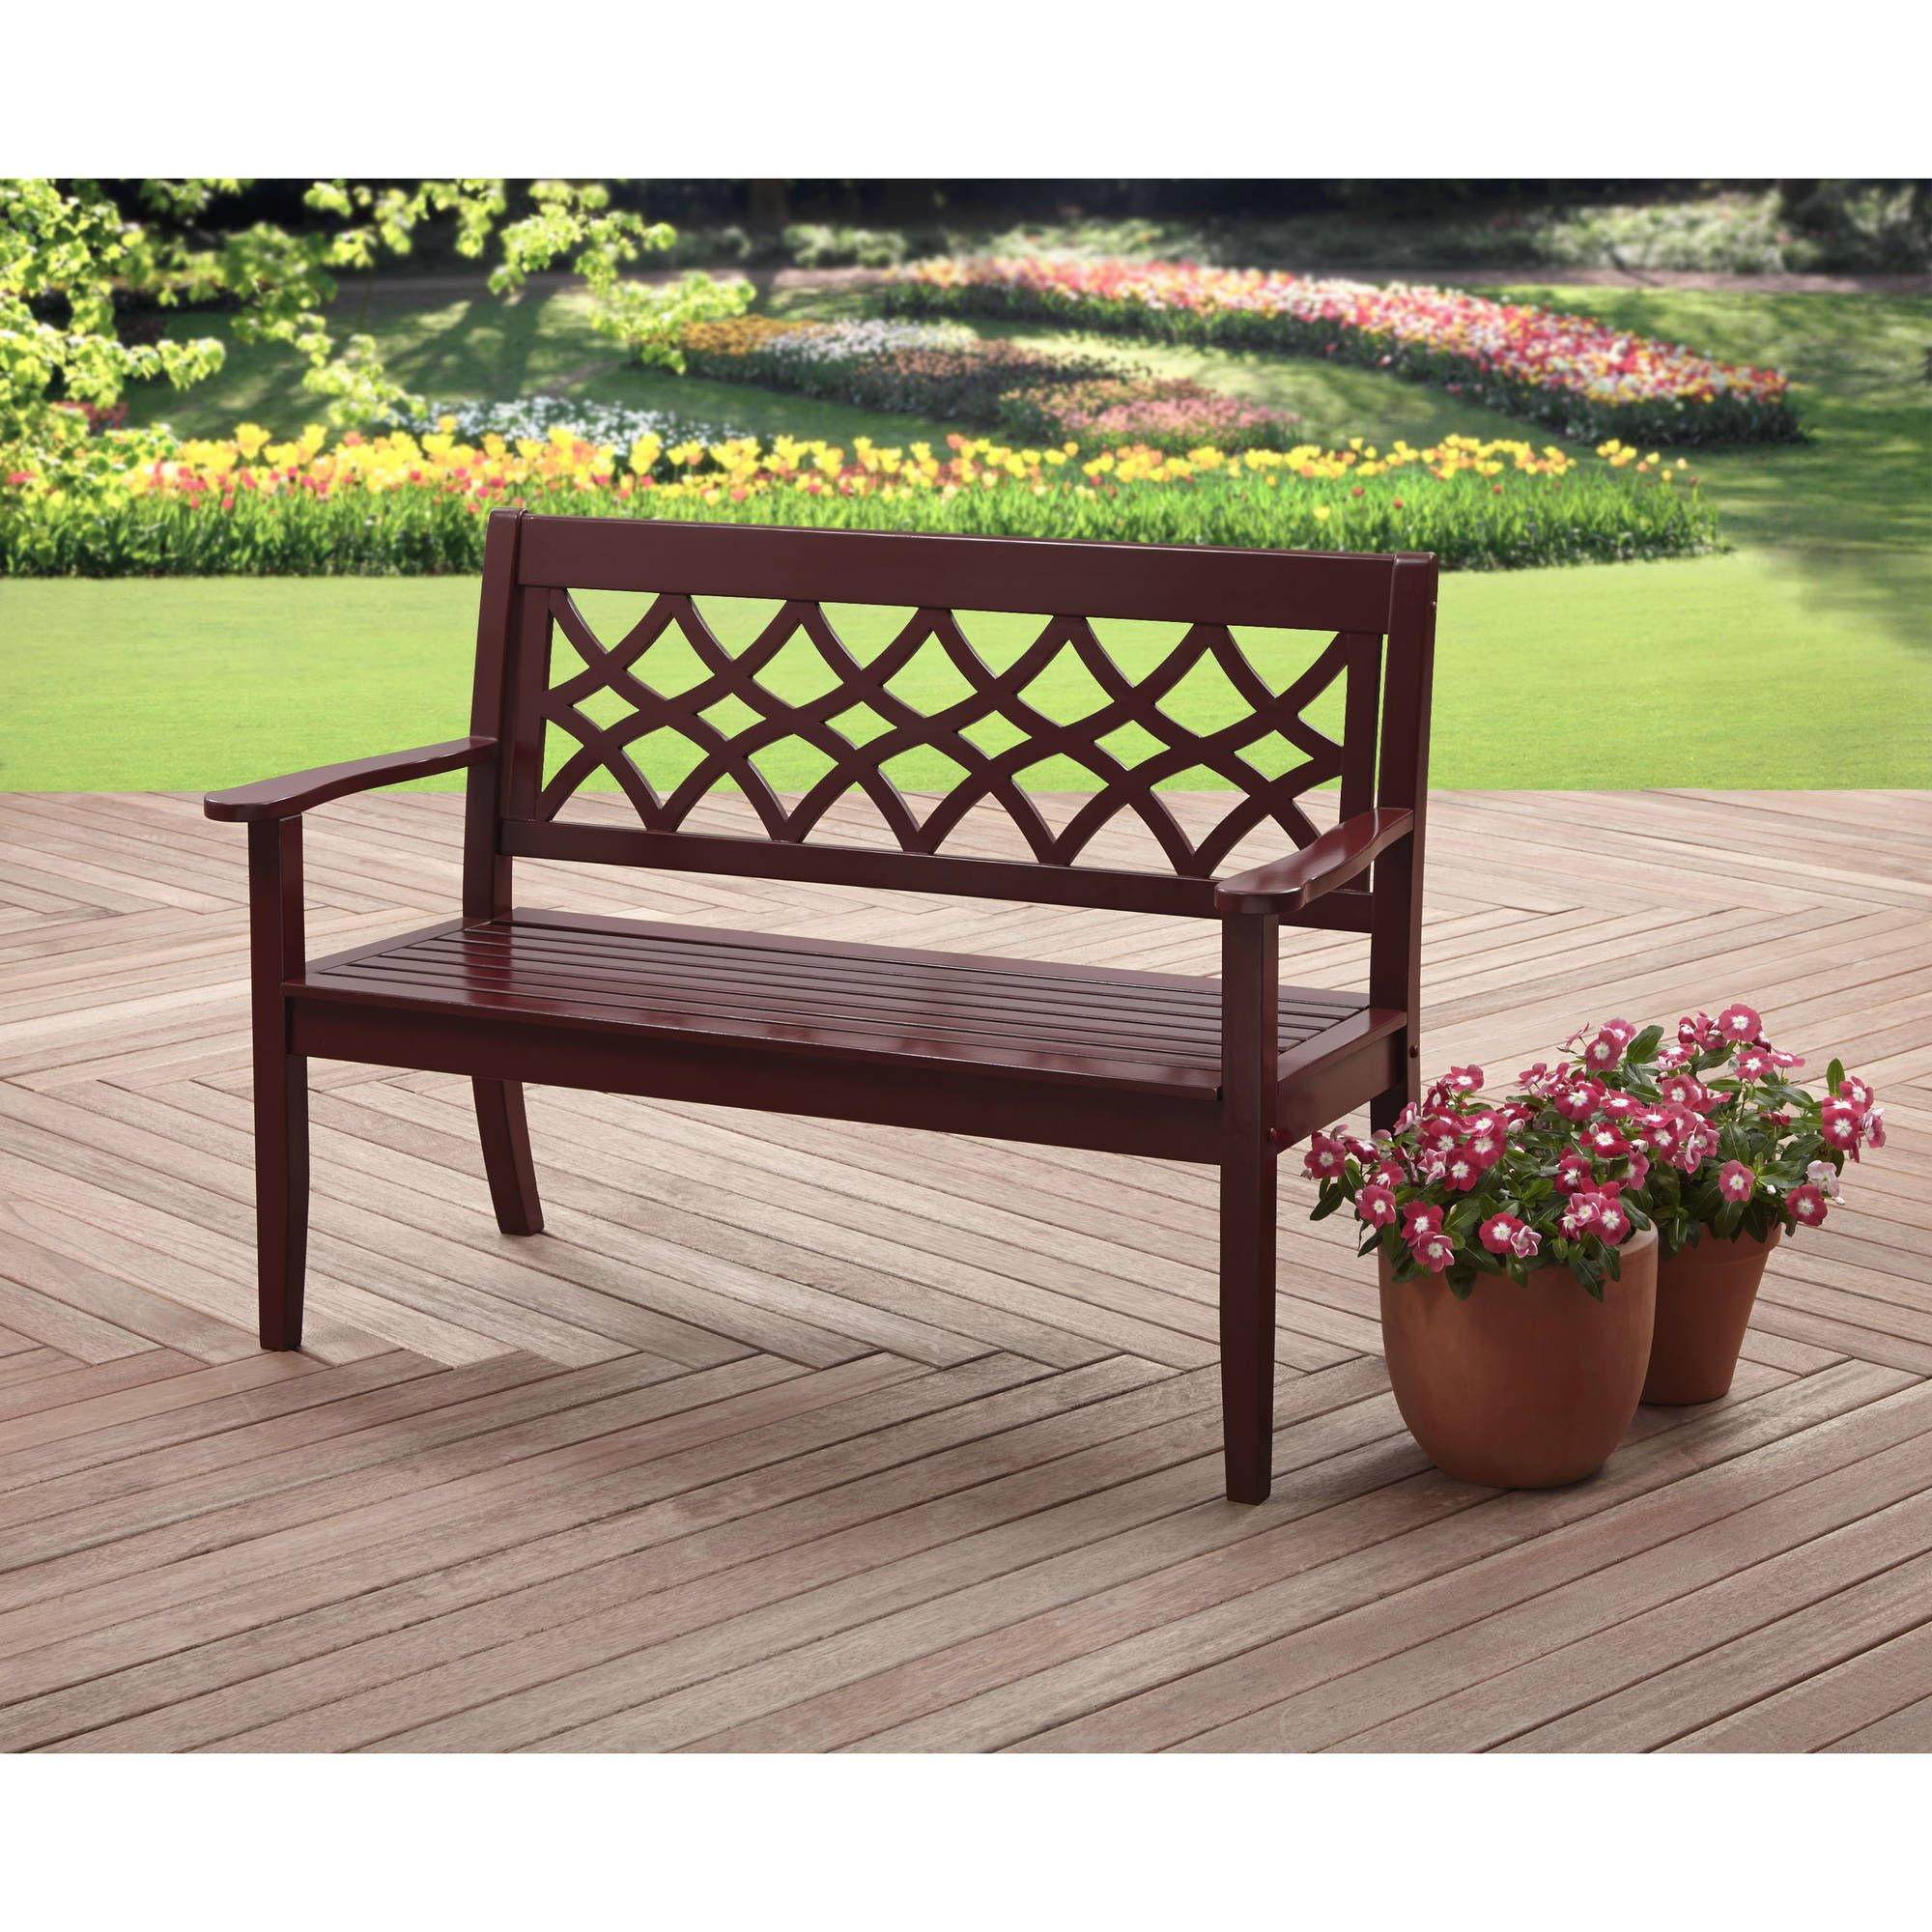 Patio Furniture The New Name Of Comfort Garden Furniture Patio Furniture Walmart Com Hndduqj Outdoor Patio Chairs Garden Benches For Sale Patio Table Set